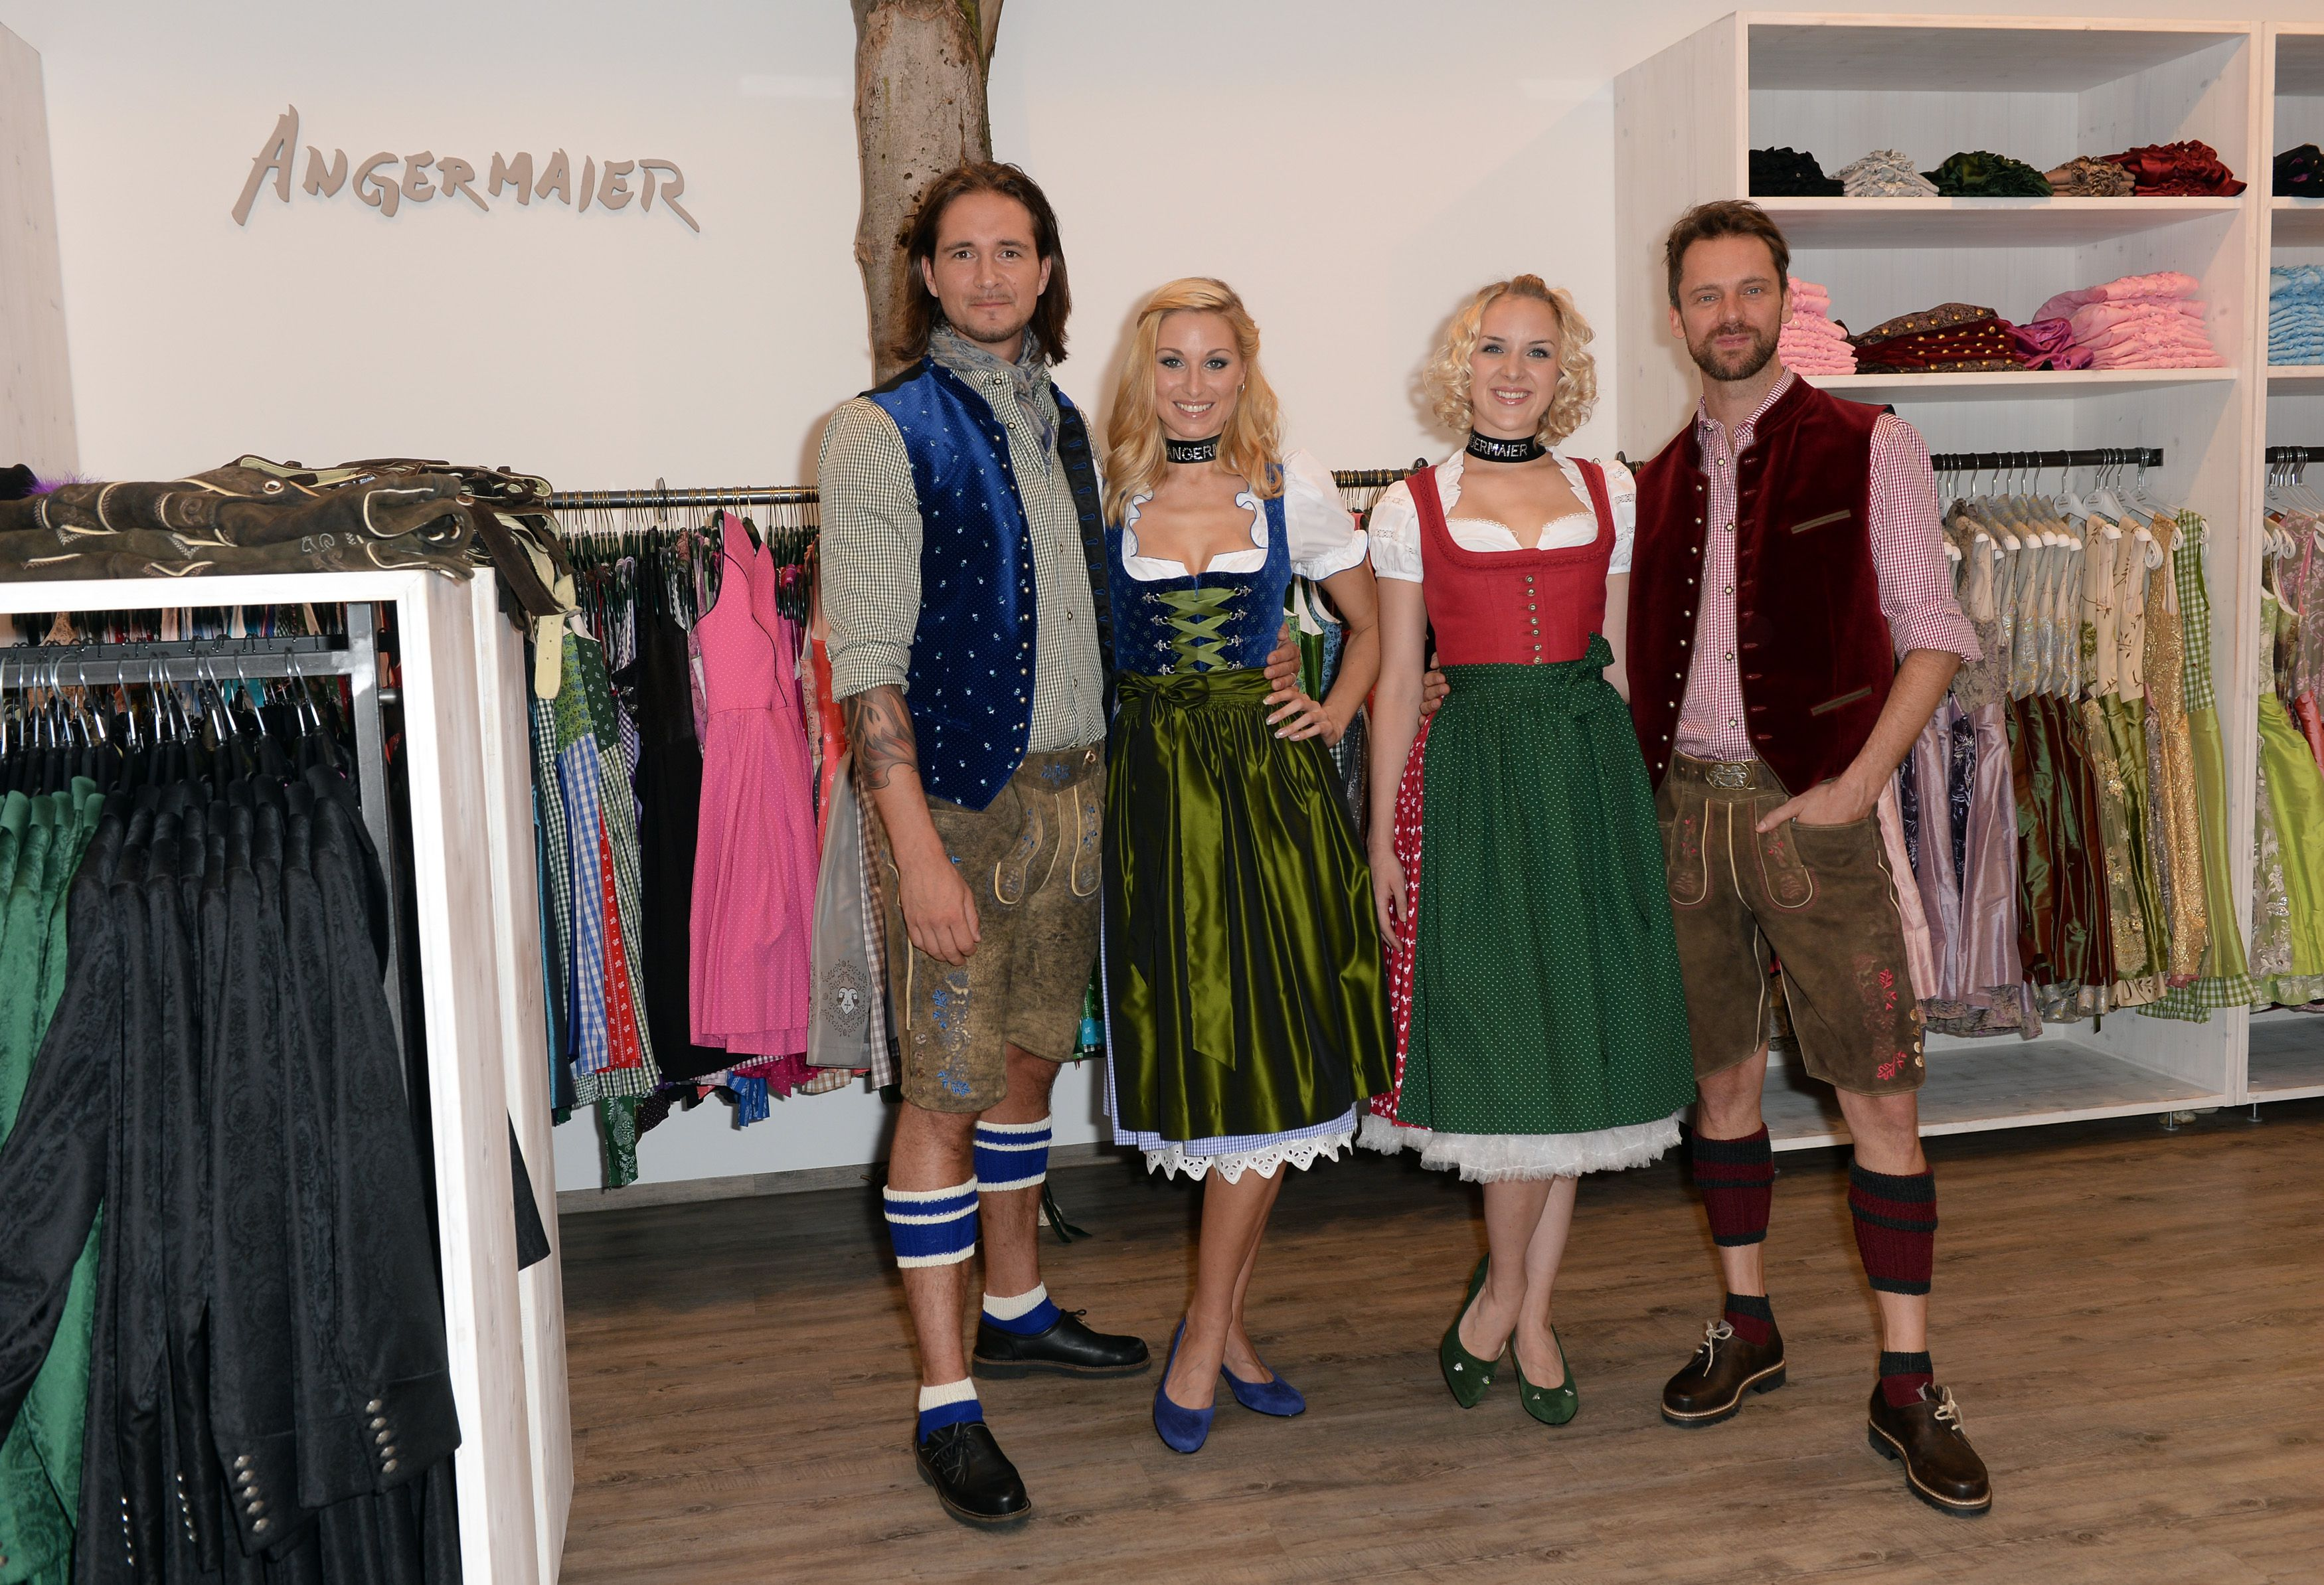 433203fb4d6 Lederhosen for Oktoberfest